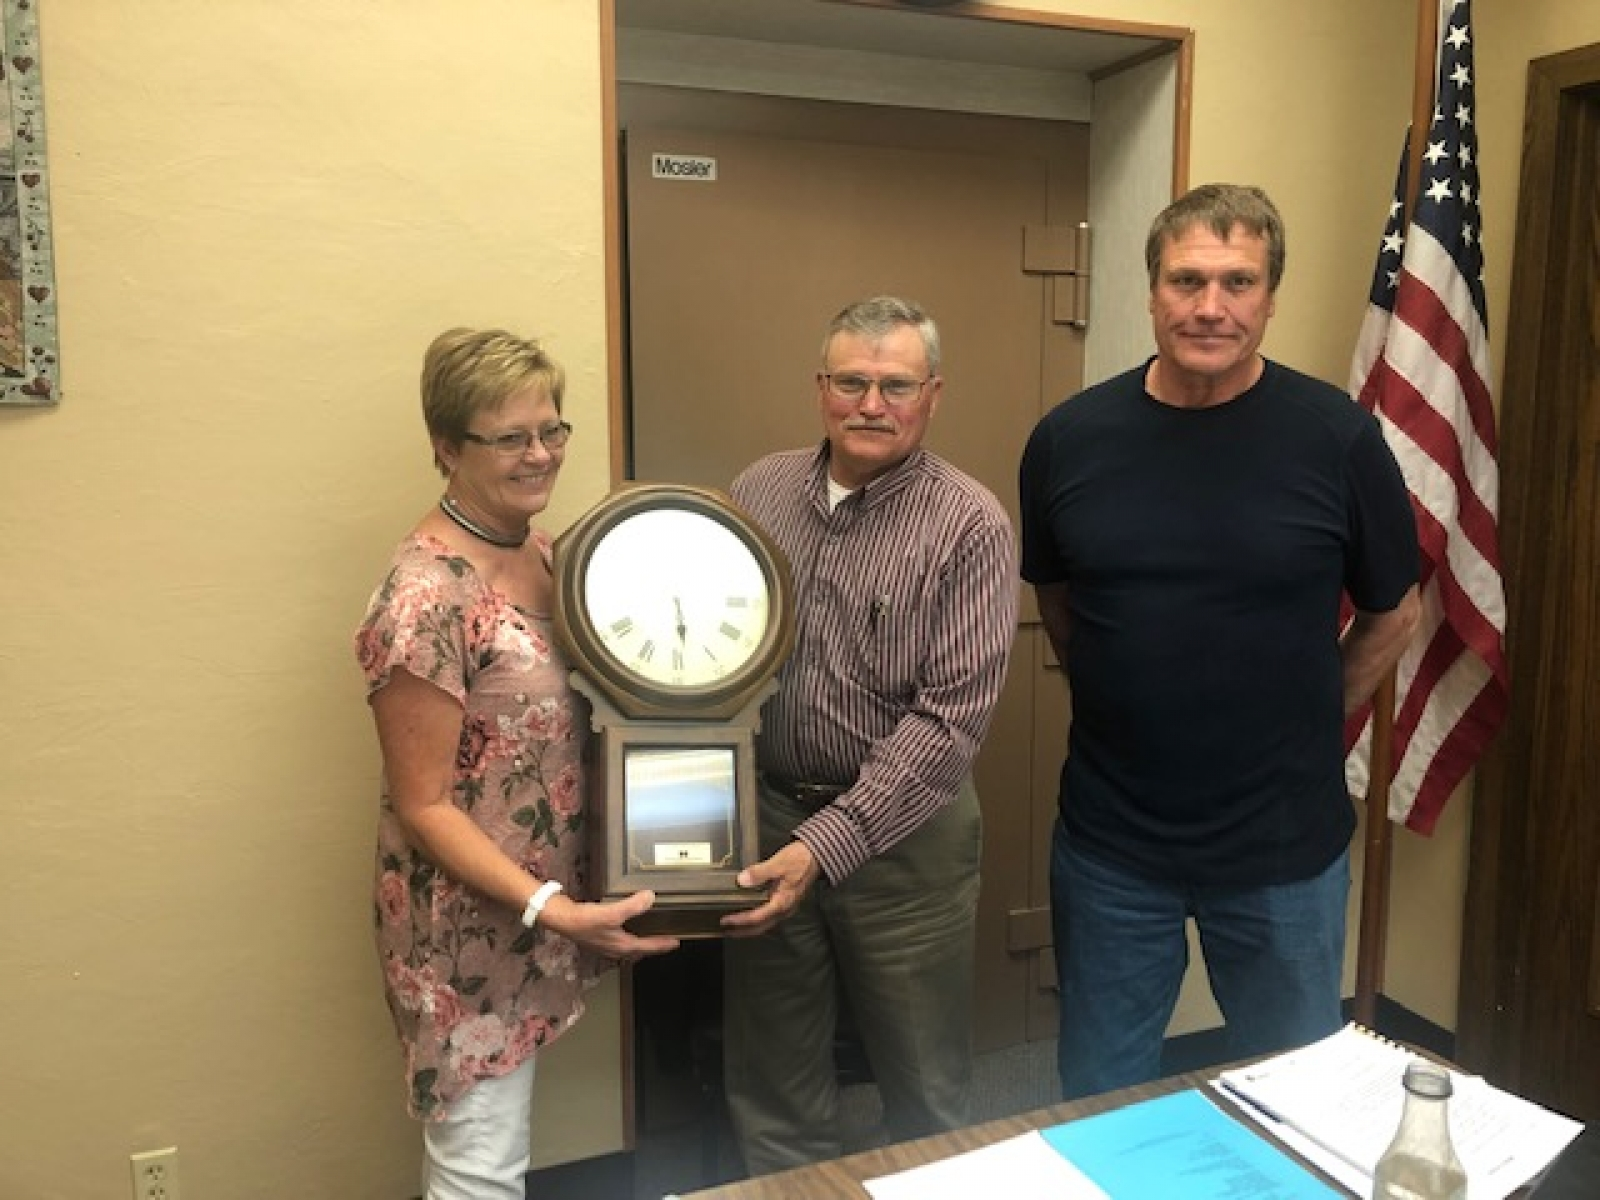 Terry Rajewich, left, and Doug Johnson, right, of NPPD present a Bulova clock to Hay Springs Mayor Richard McKay at the city council meeting on April 9.